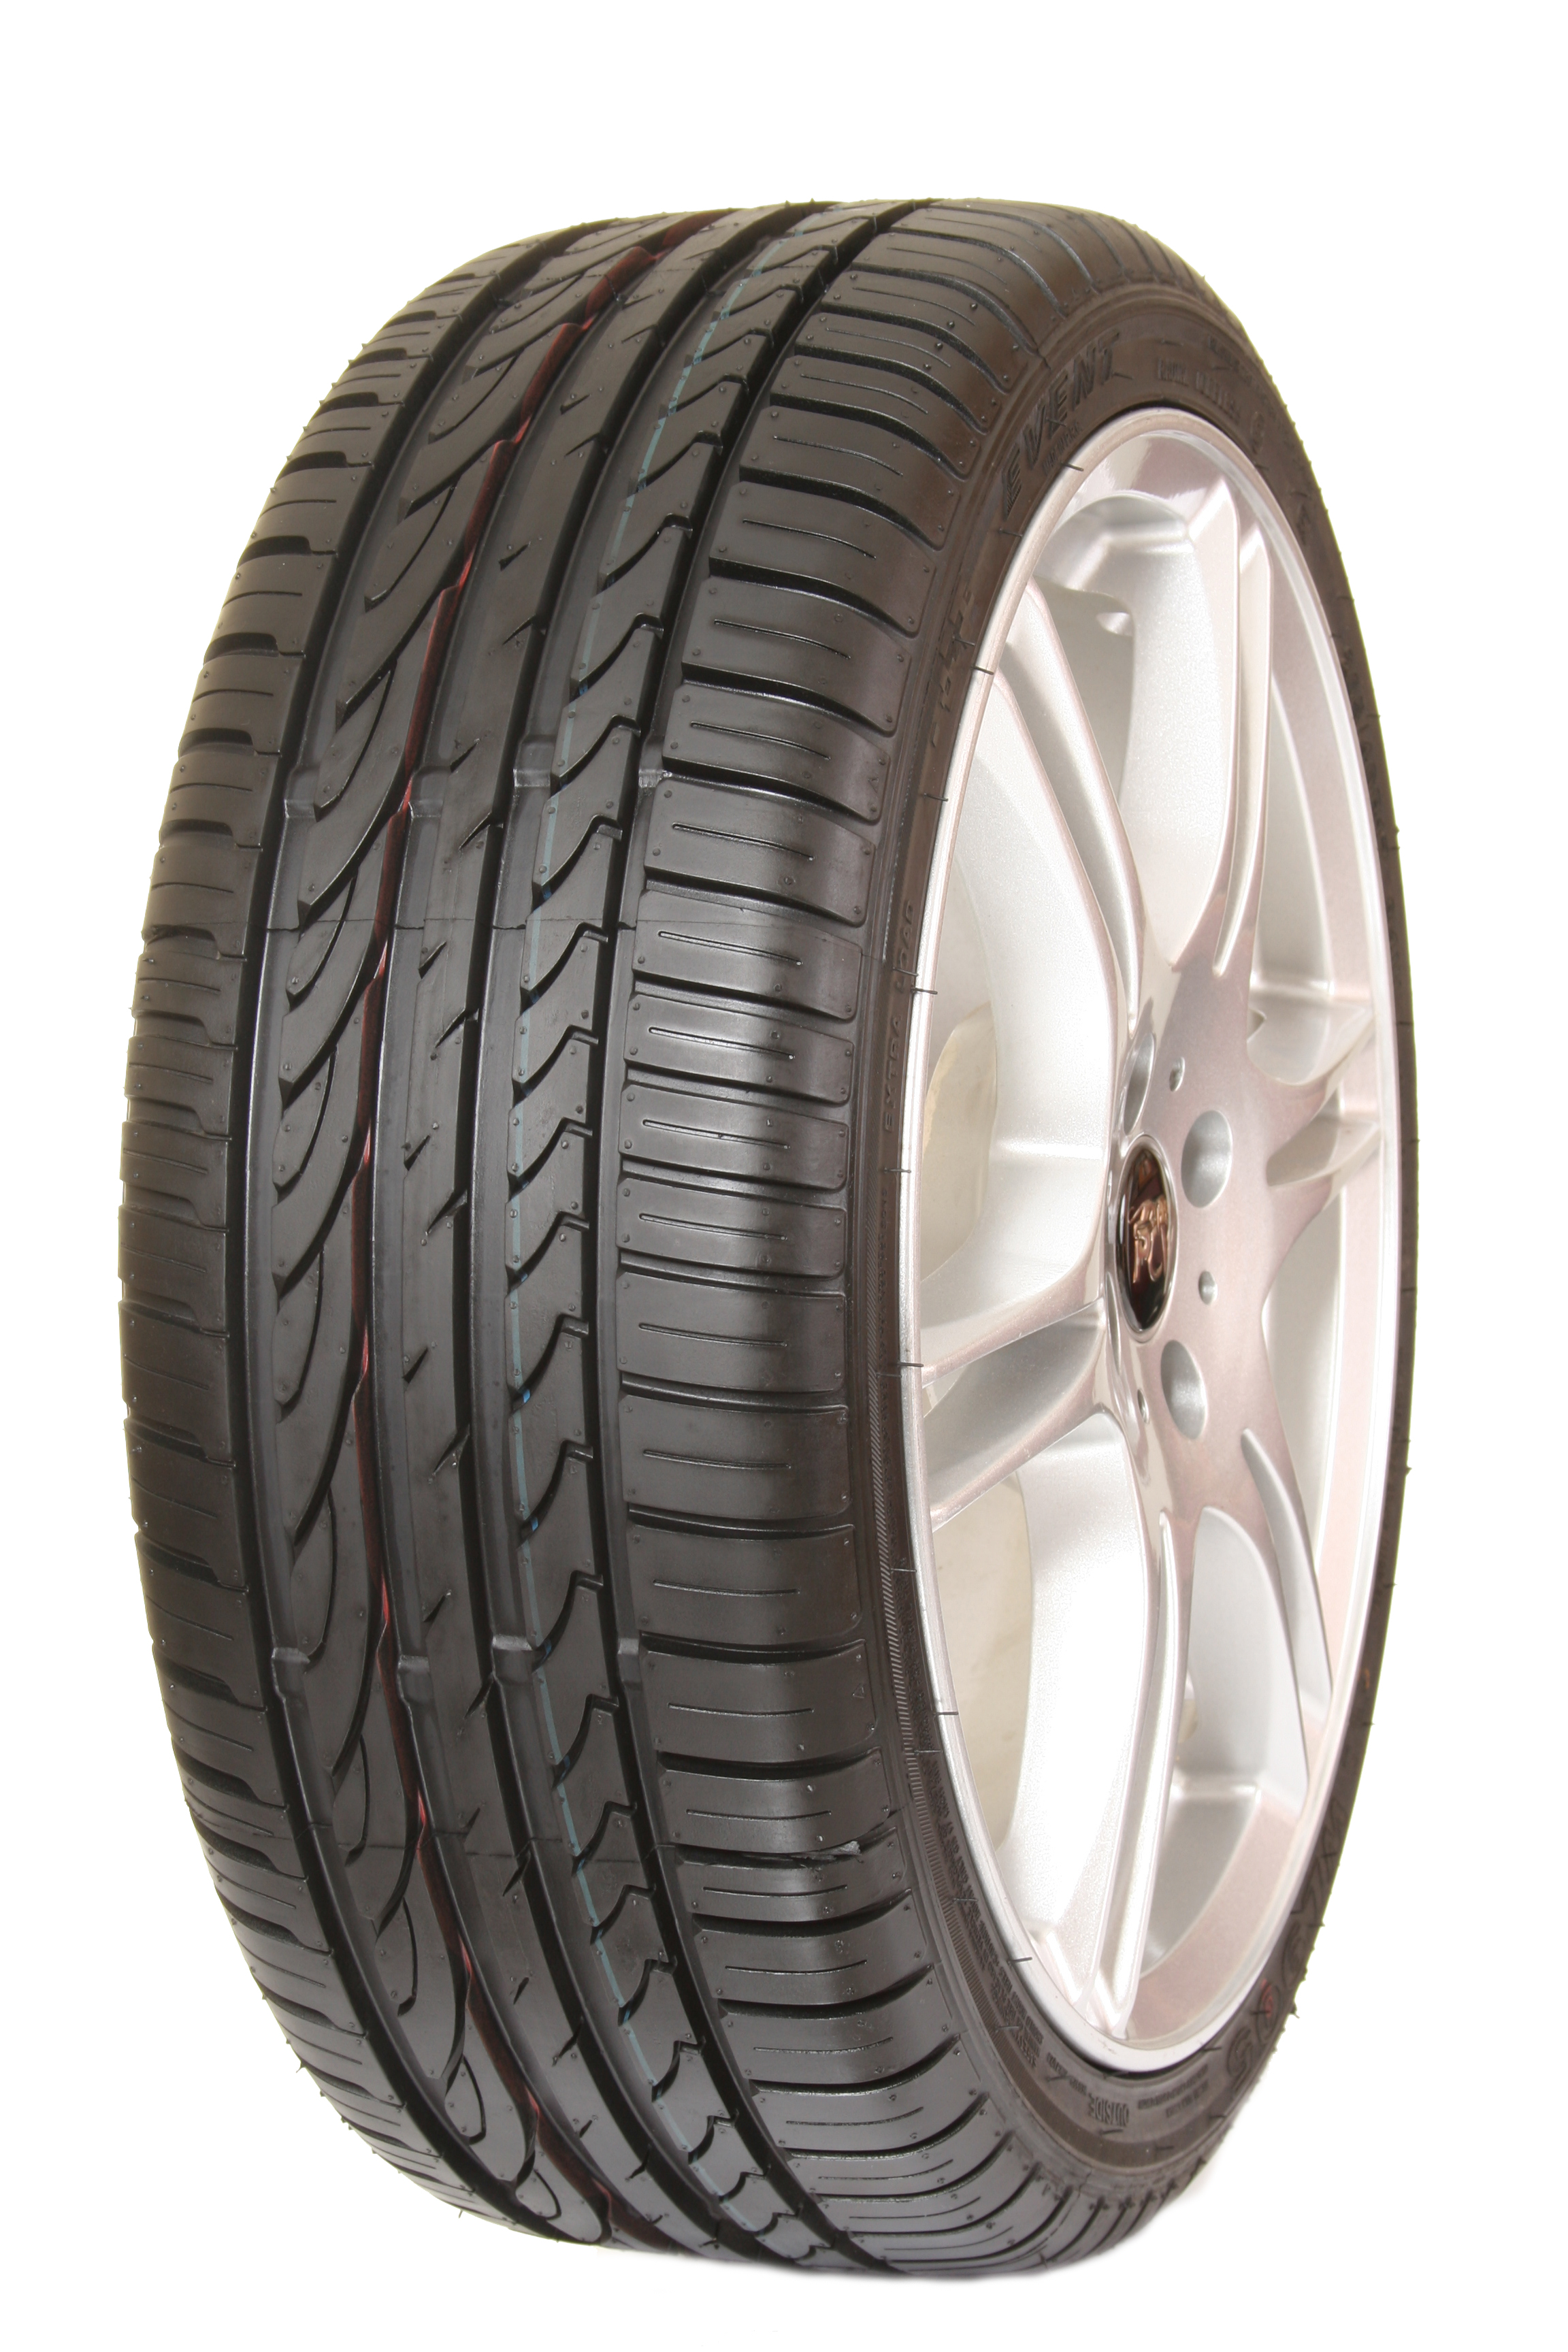 bridgestone 195 65 r15 91h bridgestone a001 weather control justtyres. Black Bedroom Furniture Sets. Home Design Ideas